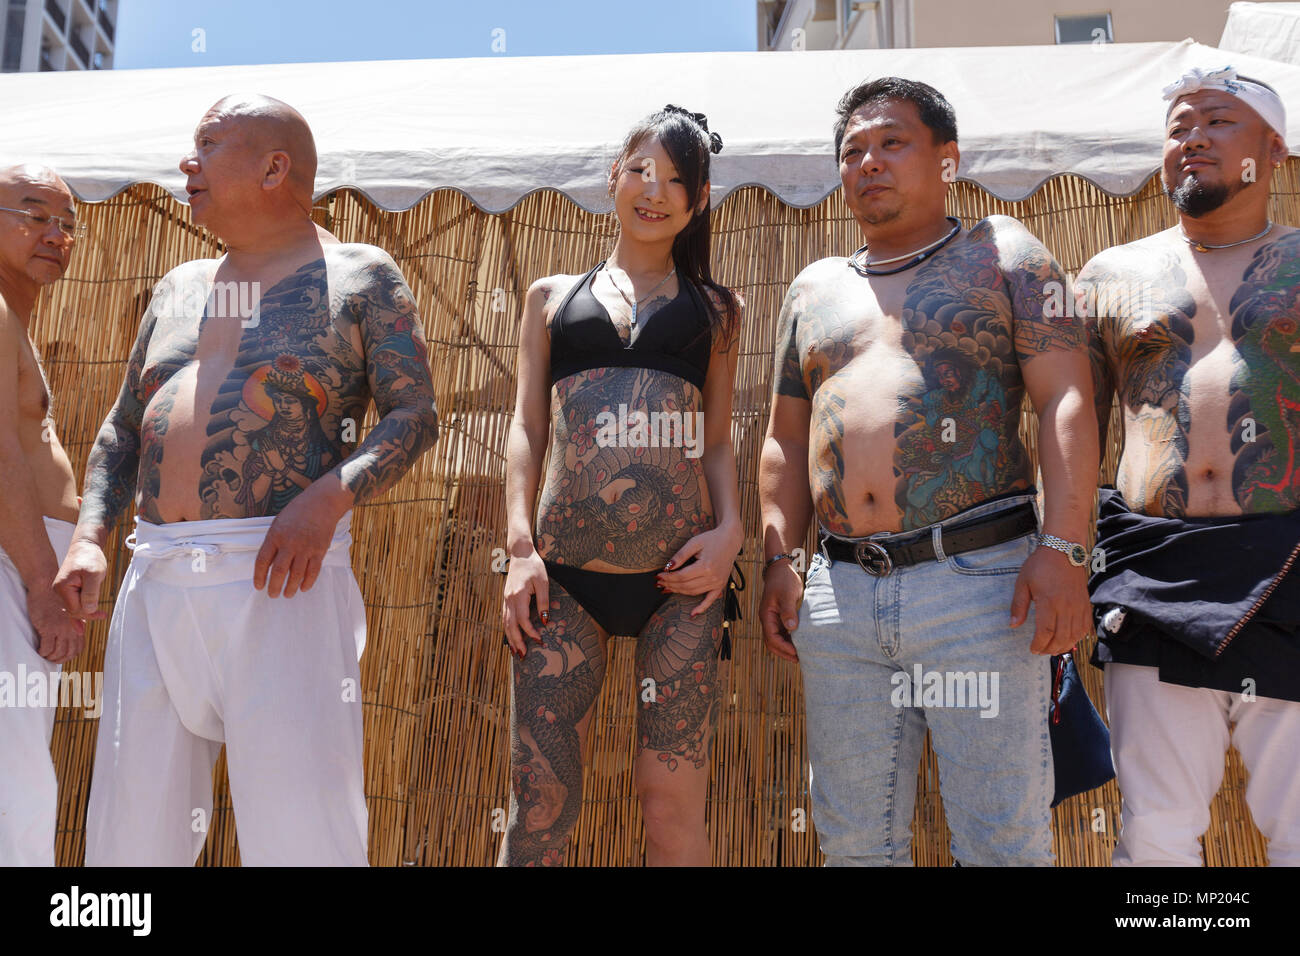 Participants showing their full body tattooed, possibly members of the Japanese mafia or Yakuza, attend the Sanja Matsuri in Asakusa district on May 20, 2018, Tokyo, Japan. The Sanja Matsuri is one of the largest Shinto festivals in Tokyo, and it is held in Tokyo's Asakusa district for three days around the third weekend of May. Large groups of people dressed up traditional clothes carry Mikoshi (sacred portable shrines) between the streets near to Sensoji Temple to bring blessing and fortune tothe inhabitants of the neighboring community at Asakusa. Stock Photo